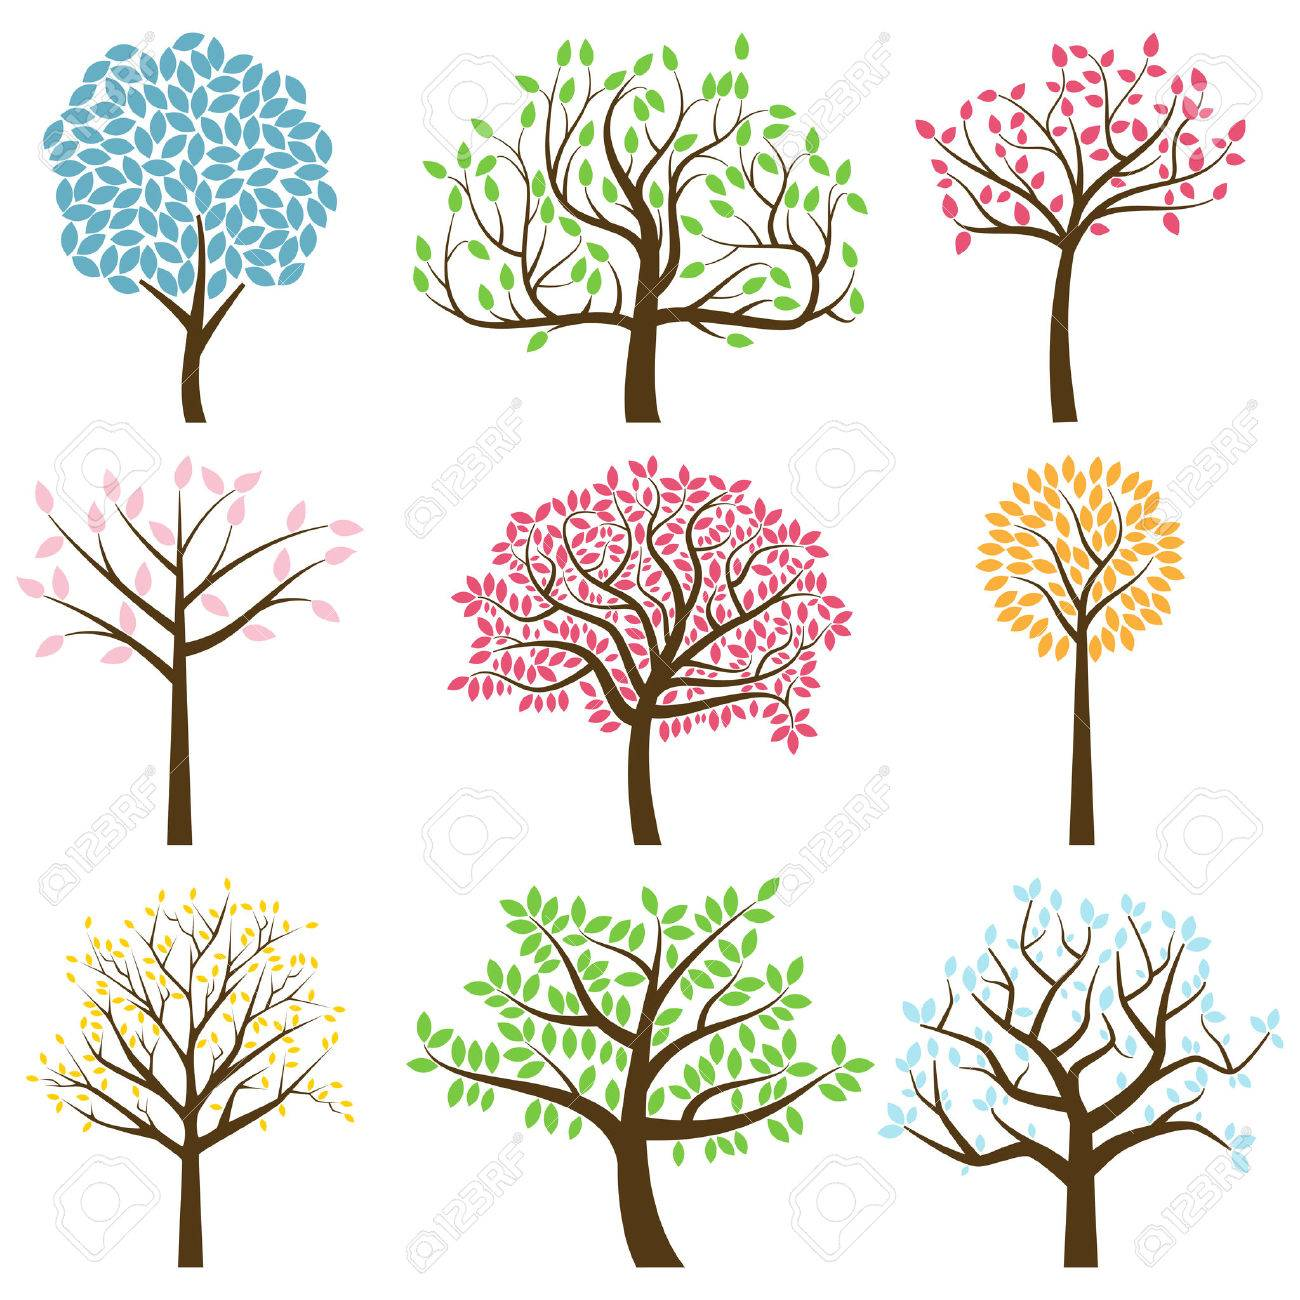 Vector Collection of Stylized Tree Silhouettes - 29966385